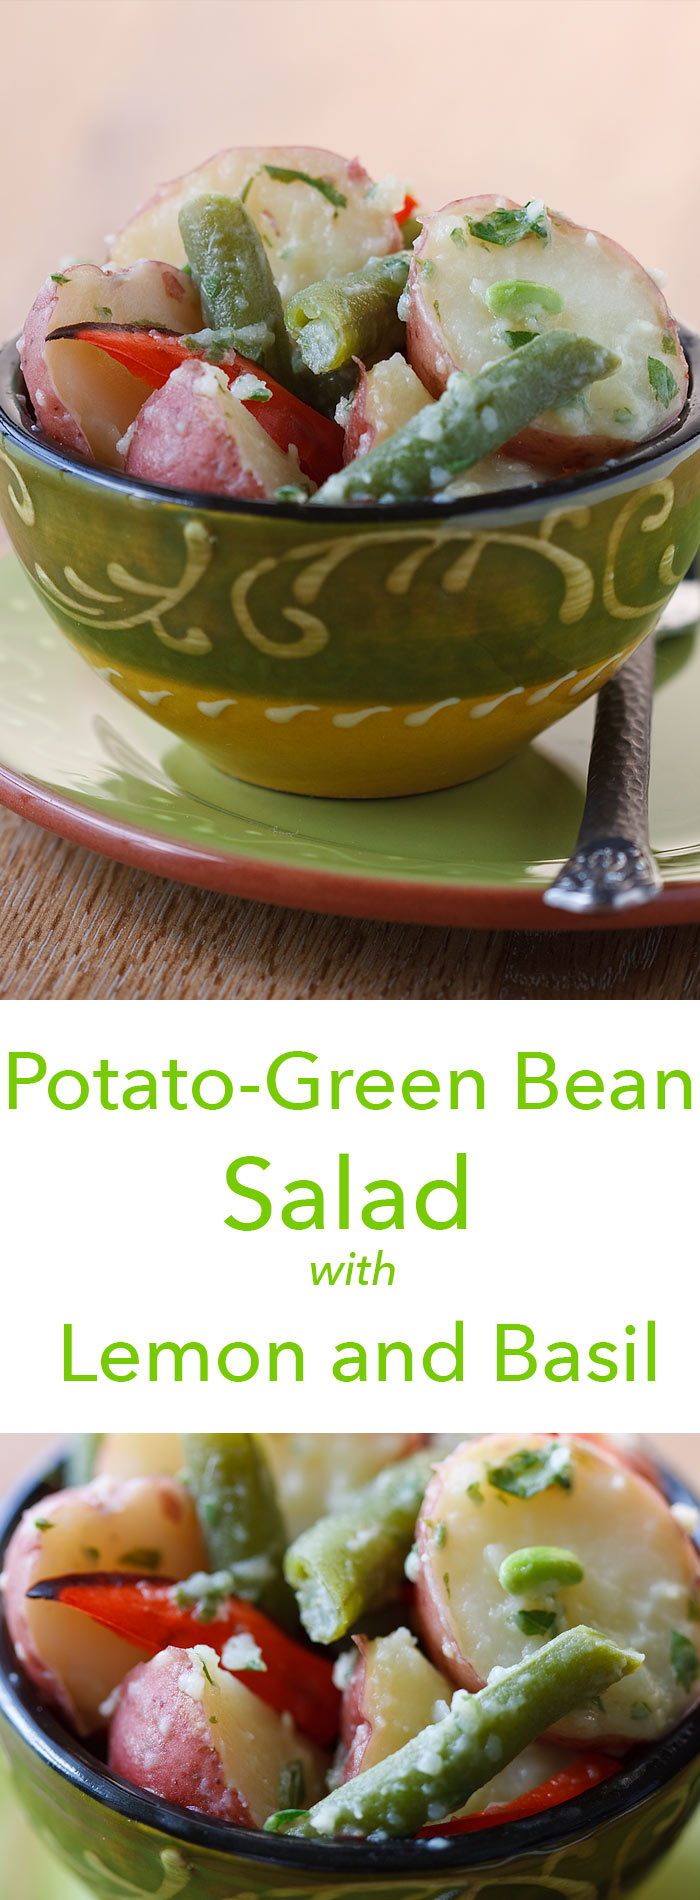 A fat-free pesto dressing of basil and garlic coats red potatoes and green beans in flavor in this light, vegan potato salad.